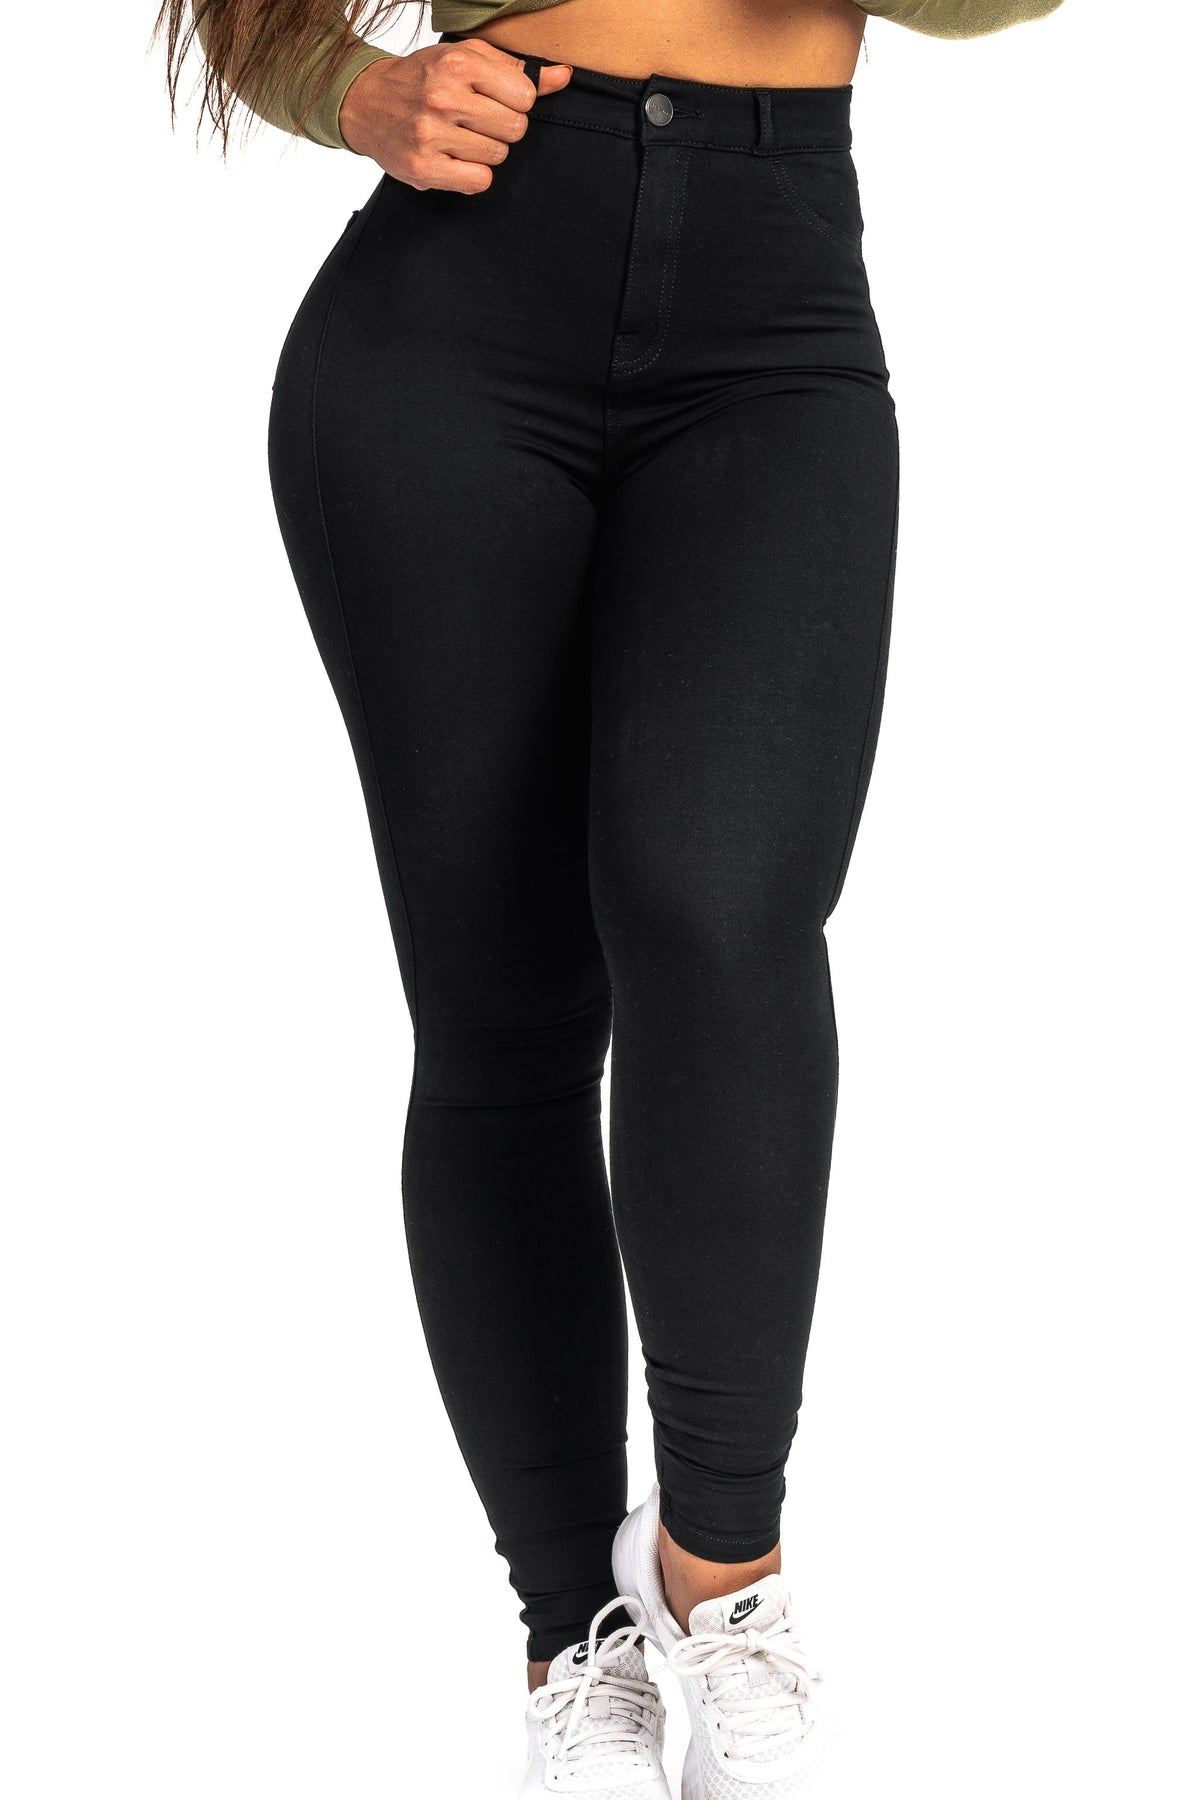 Womens 360 Light High Waisted Fitjeans - Black